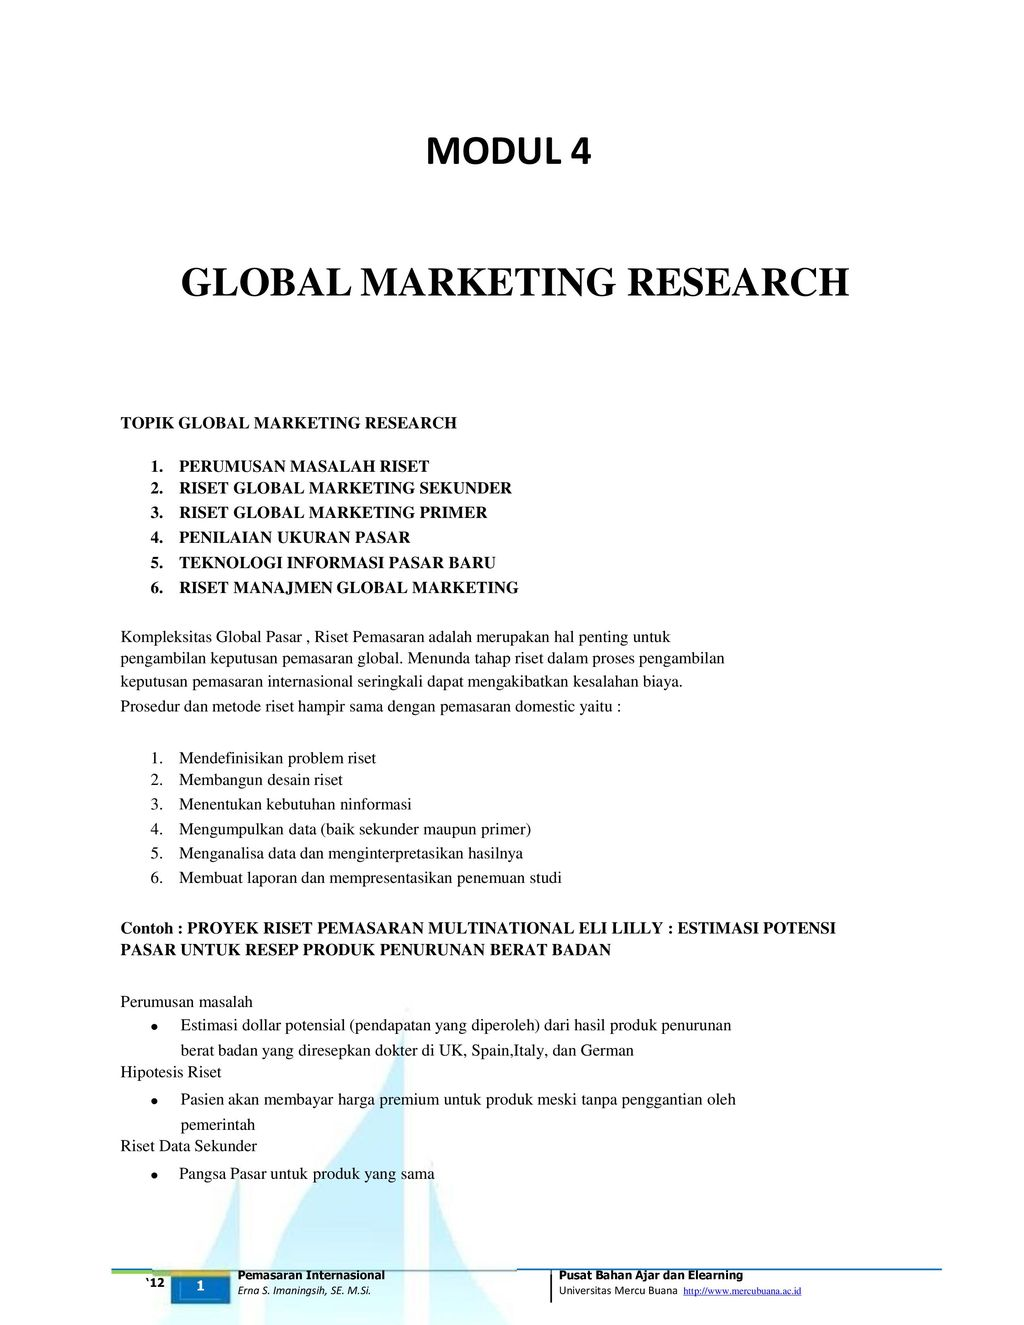 Global Marketing Research Ppt Download